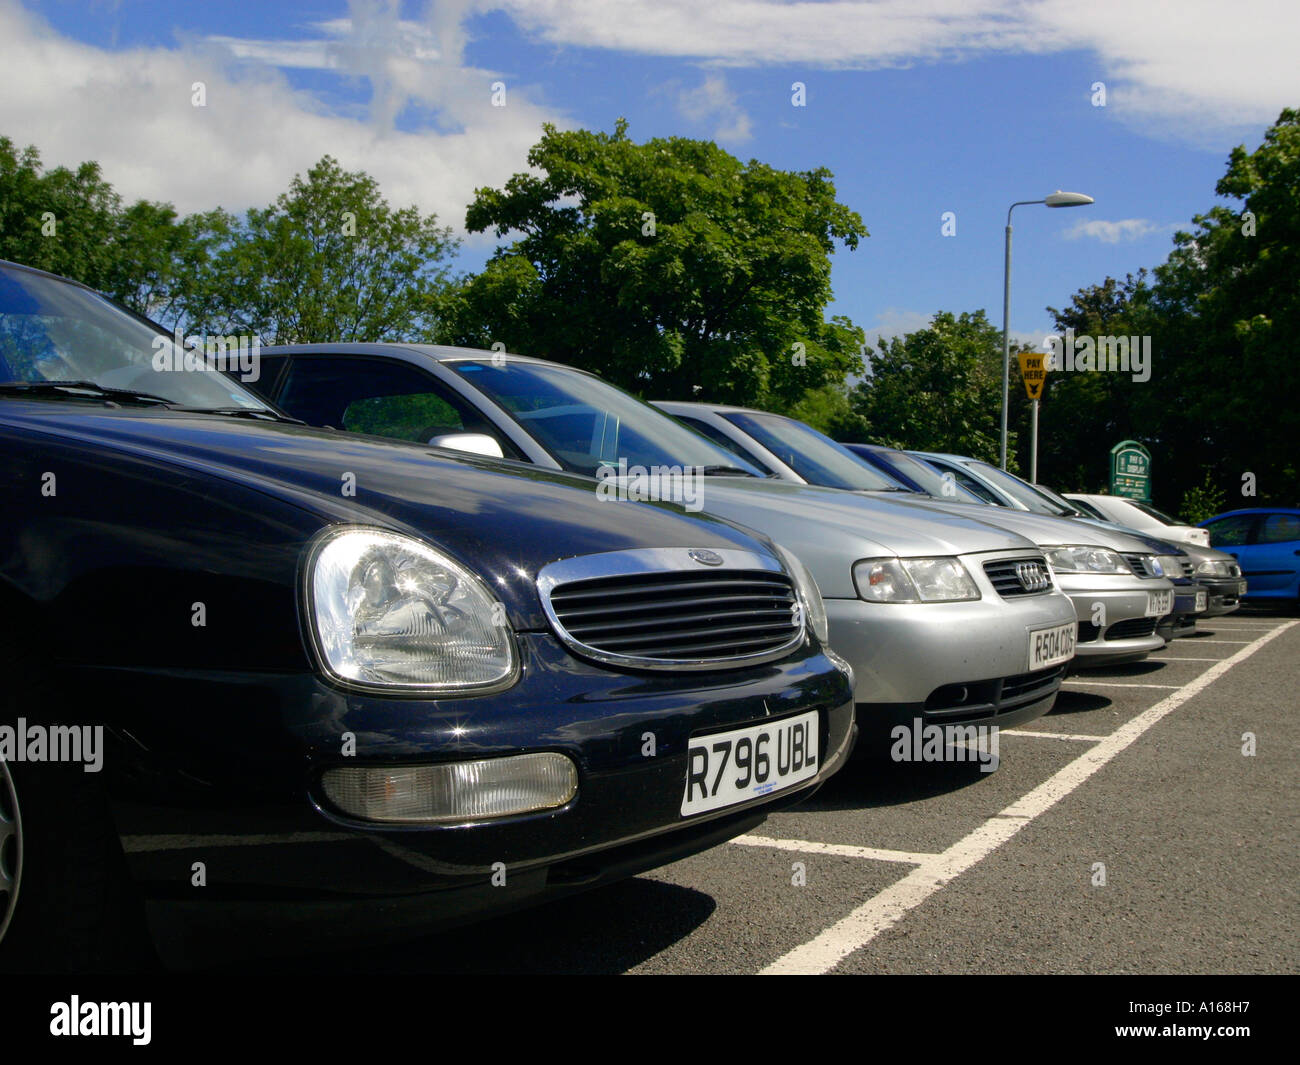 Cars parked in a public pay and display car park in England - Stock Image